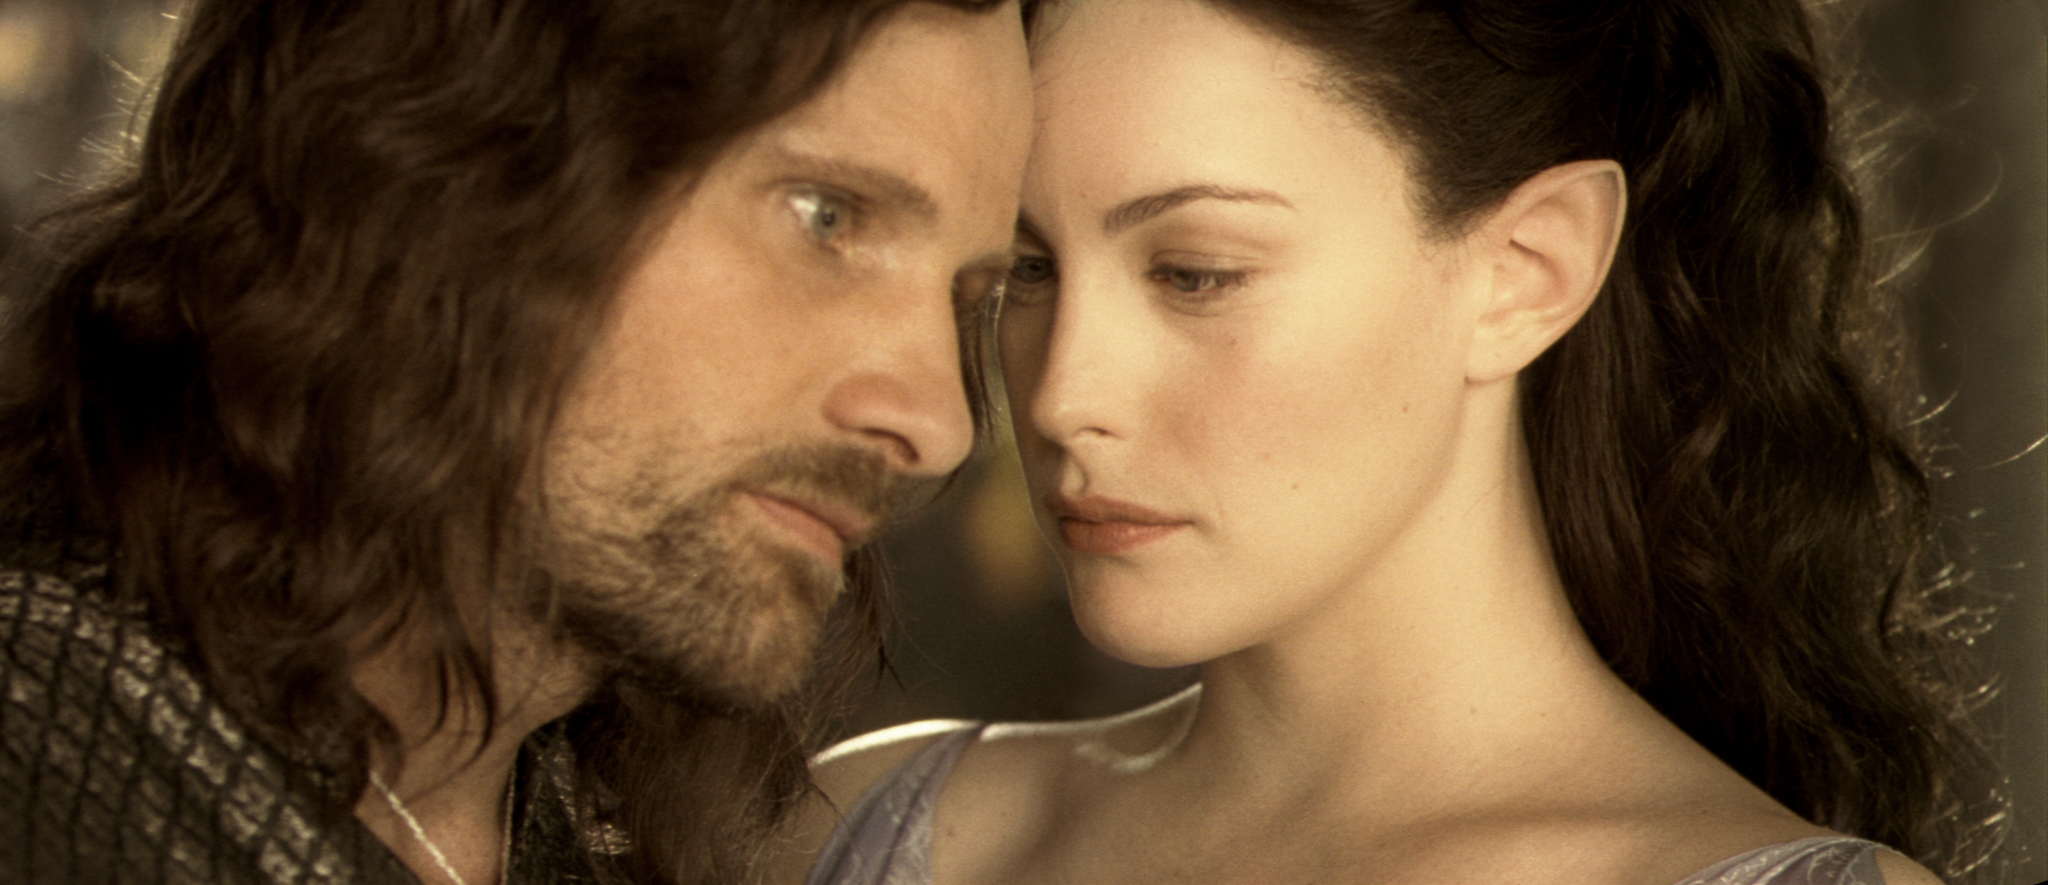 Liv Tyler and Viggo Mortensen in The Lord of the Rings: The Two Towers (2002)